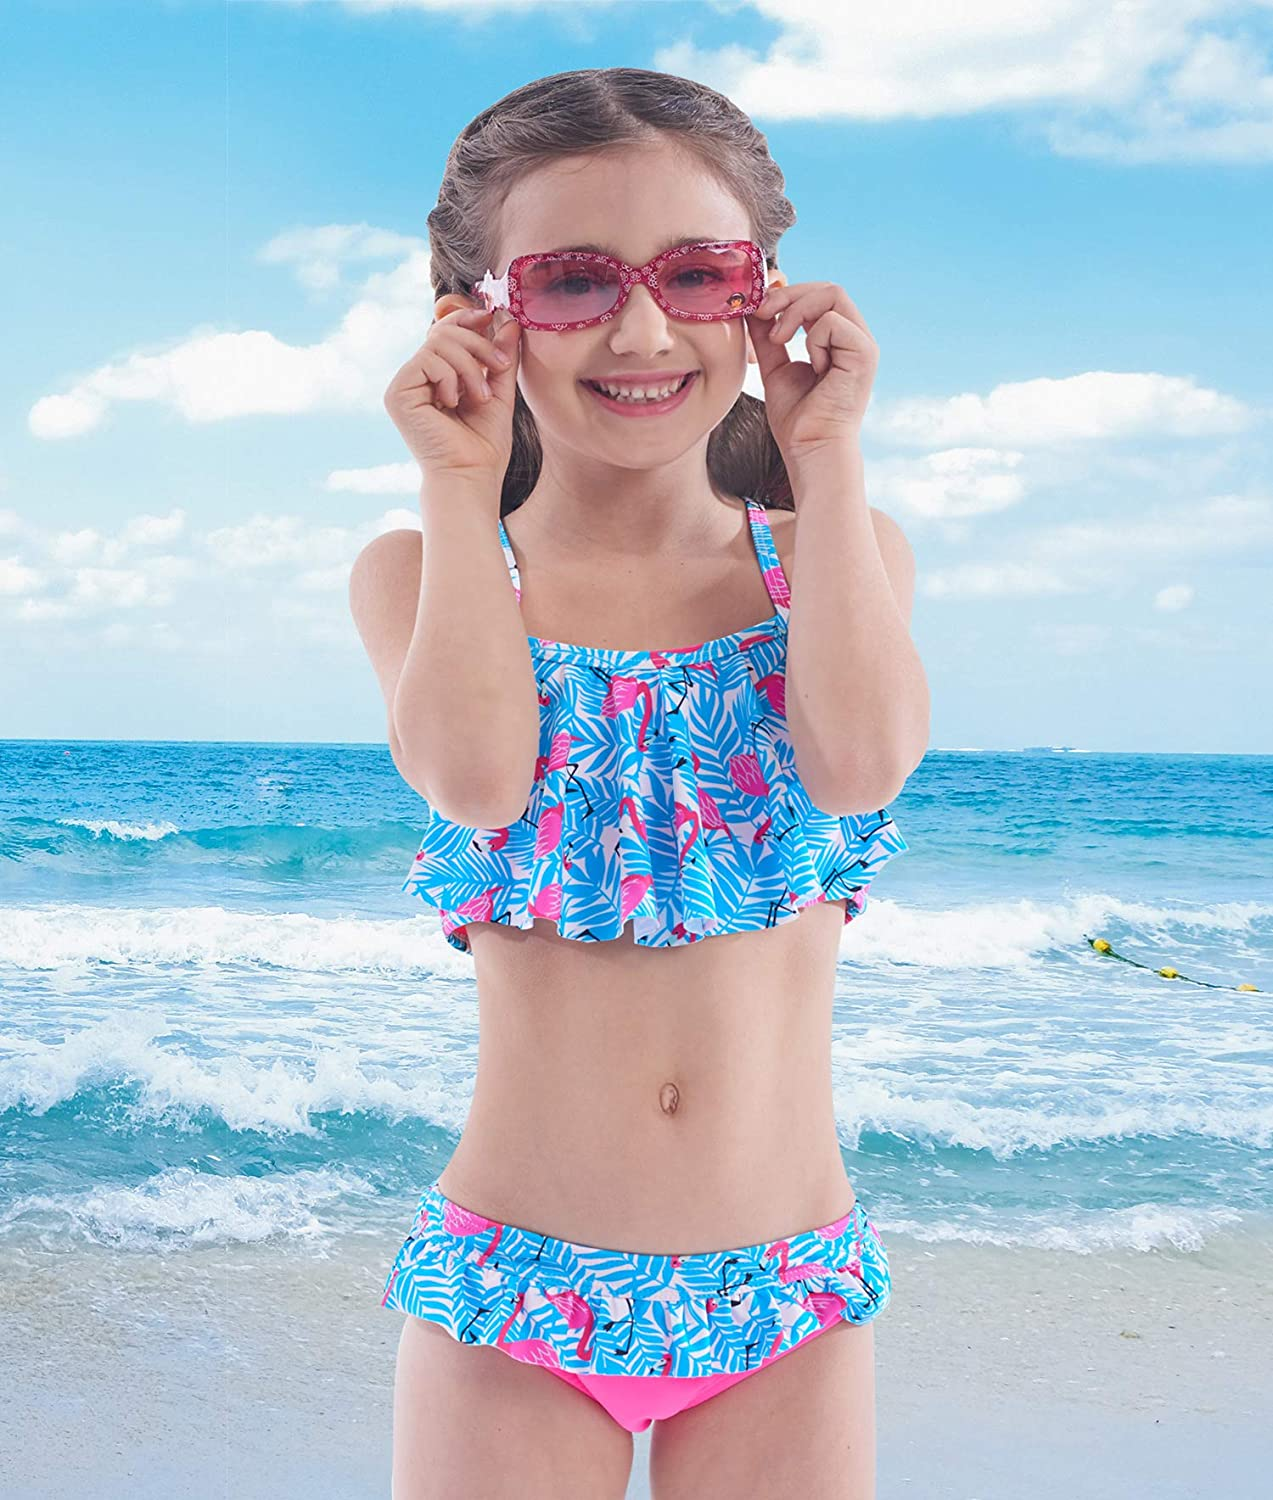 IKALI Girls Two-Piece Bikini Flouncing Hawaii Floral Printing Swimsuit Beach Bathing Suit for Vacation